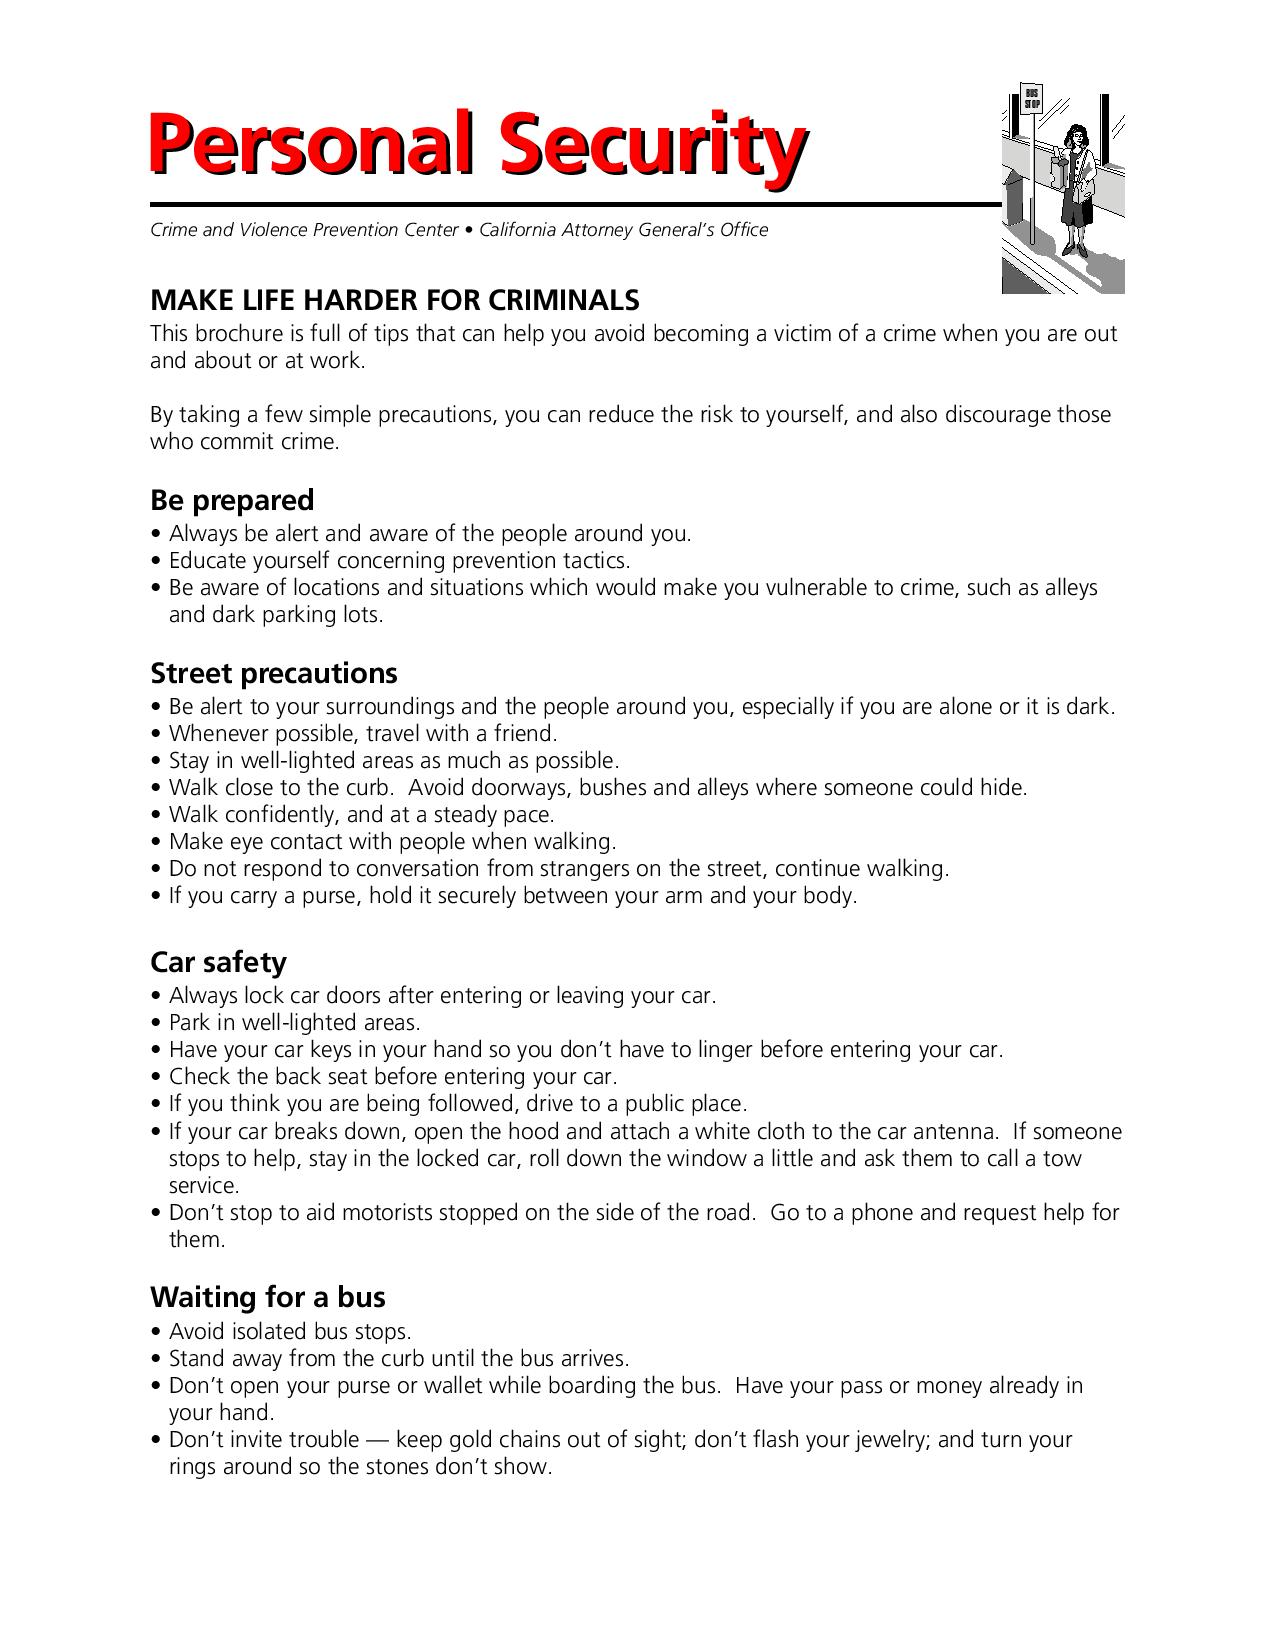 Personal security-page-001